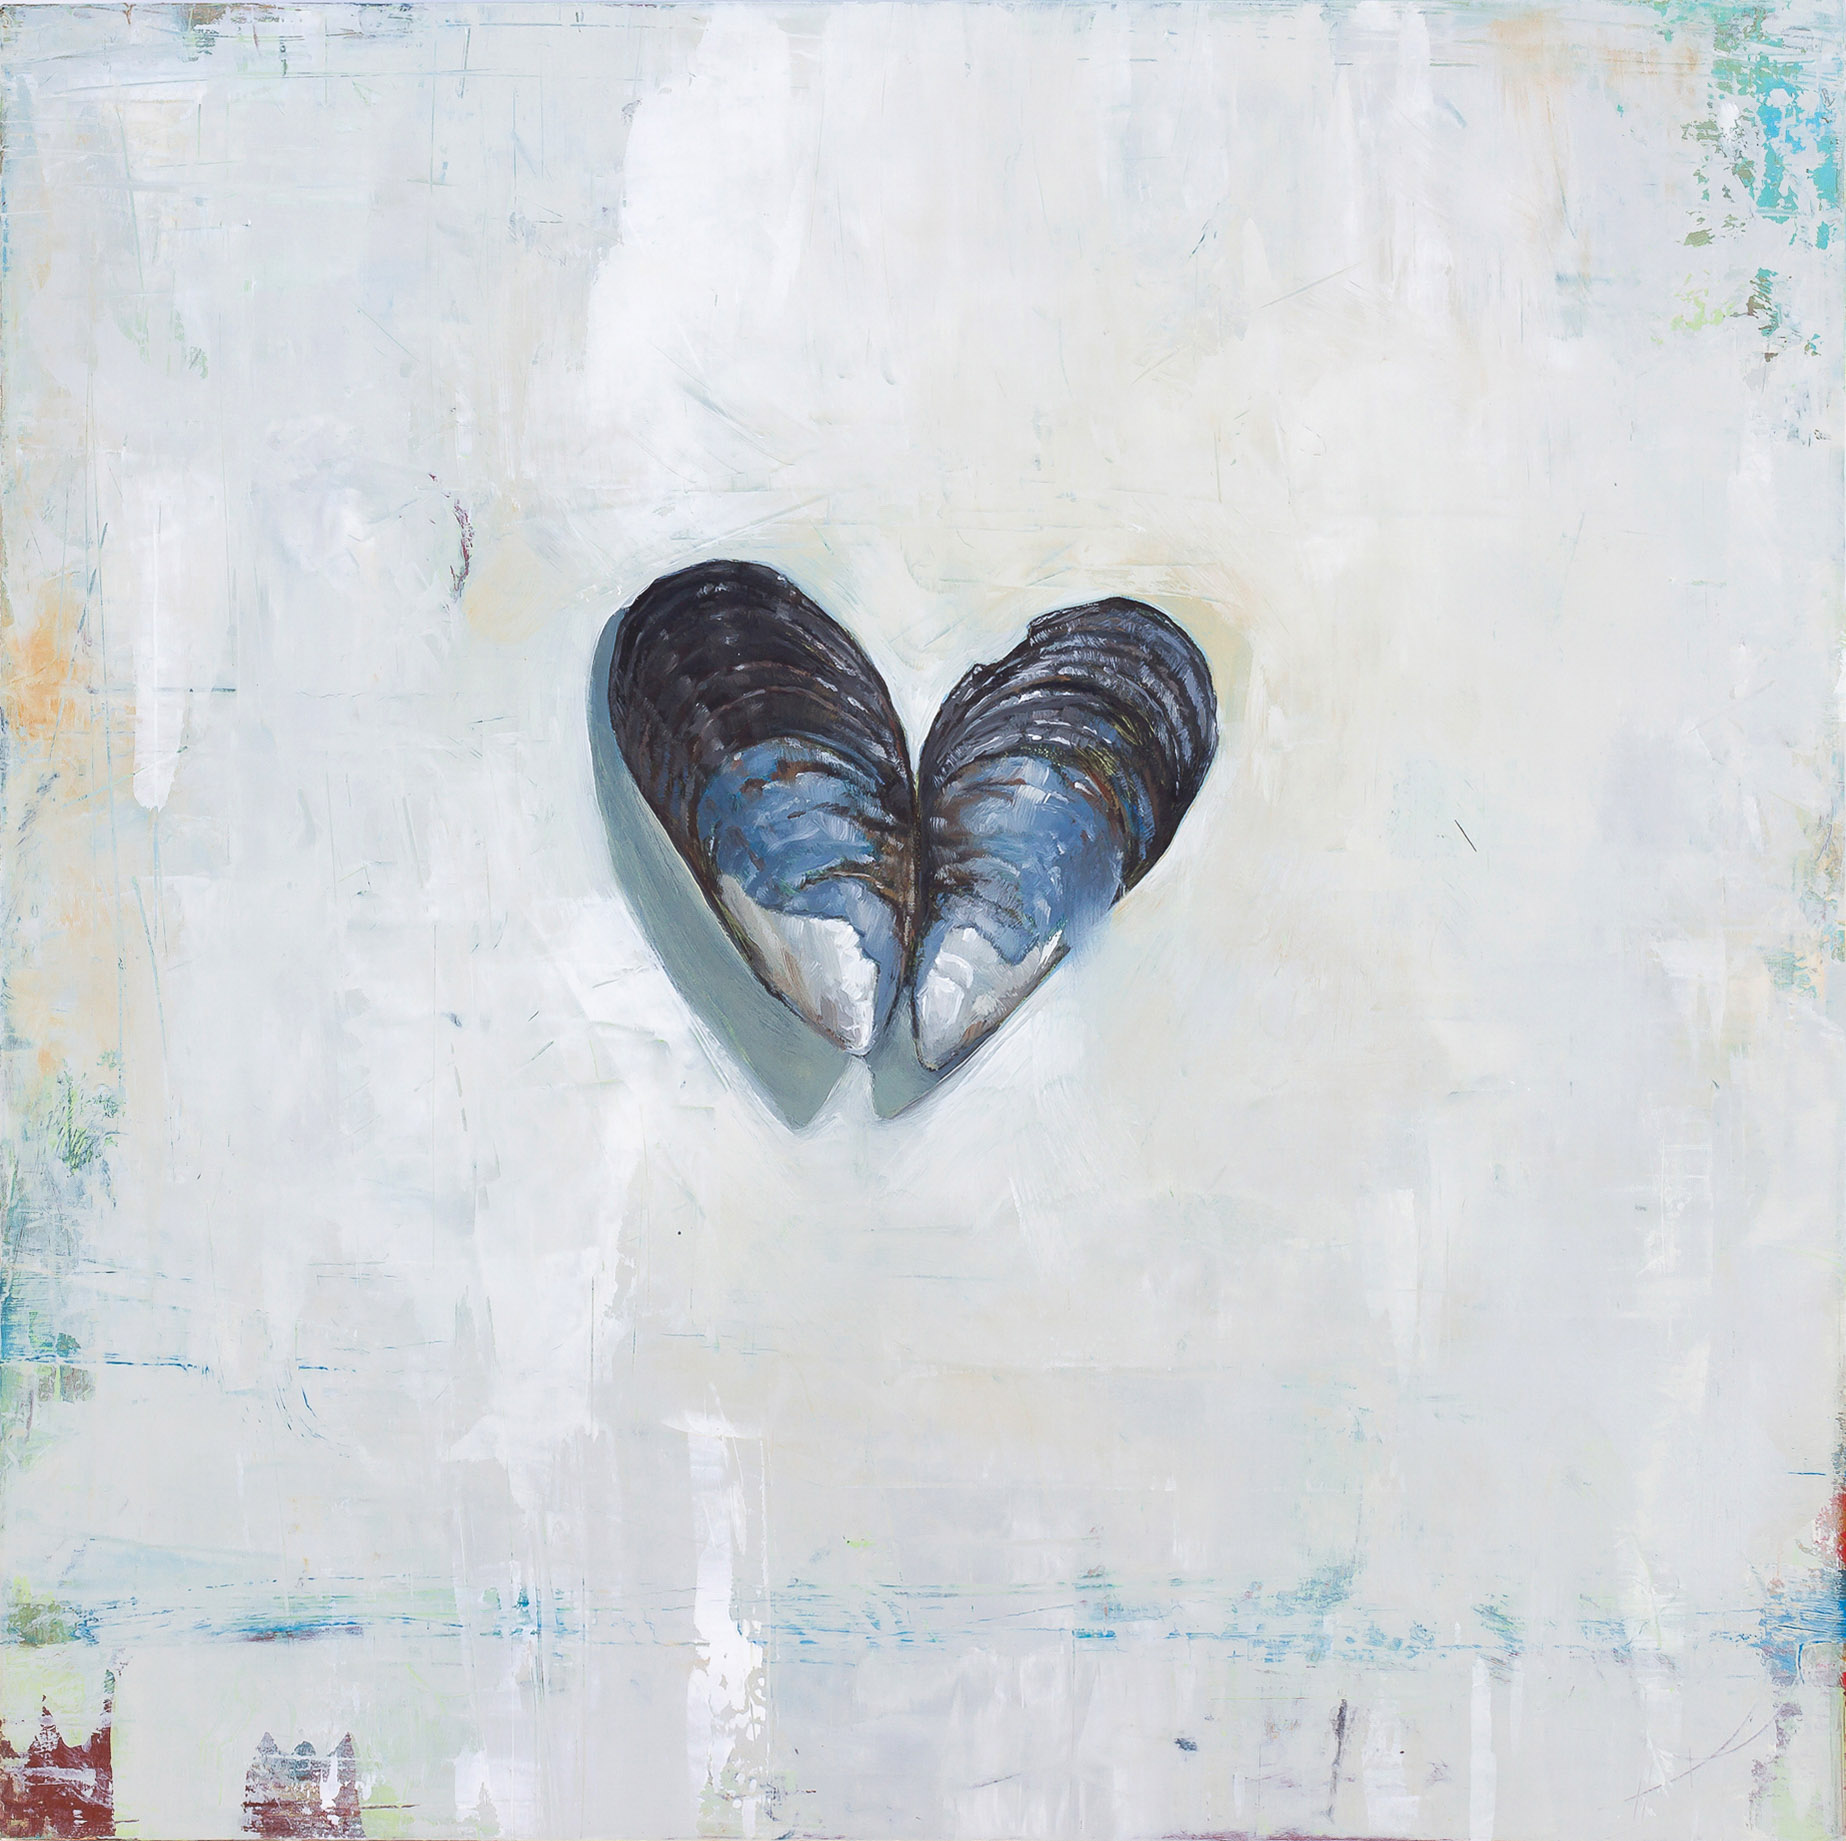 The Heart is a Mussel  2018 oil on panel 10 x 10 inches   Sold